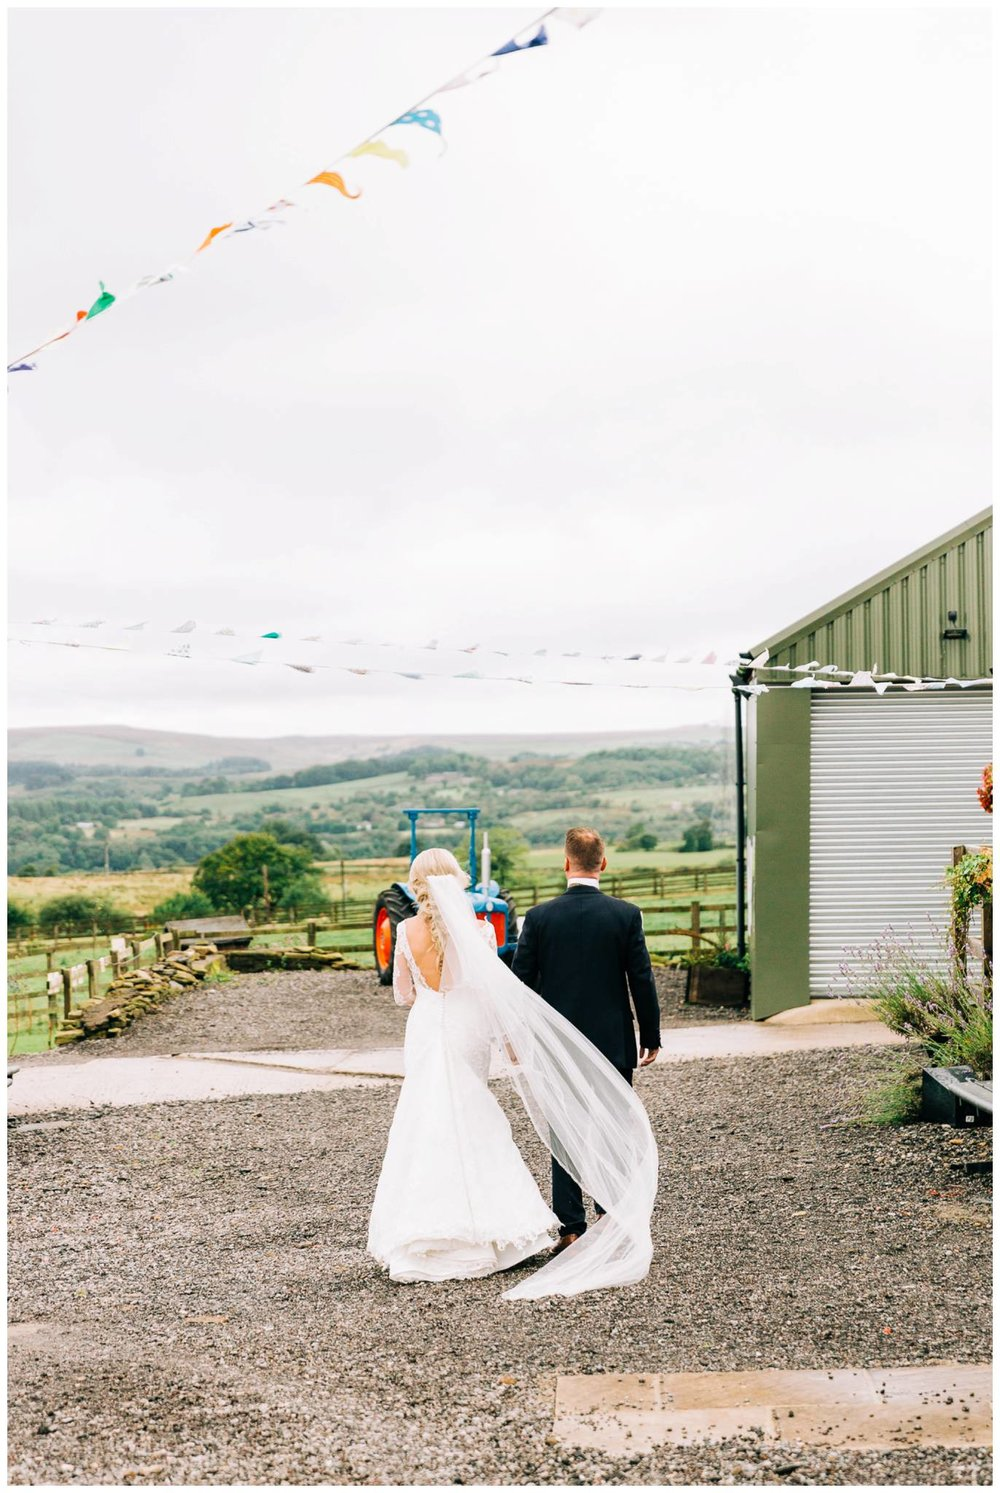 Festival wedding at Wellbeing Farm  - Bolton Wedding Photographer_0042.jpg